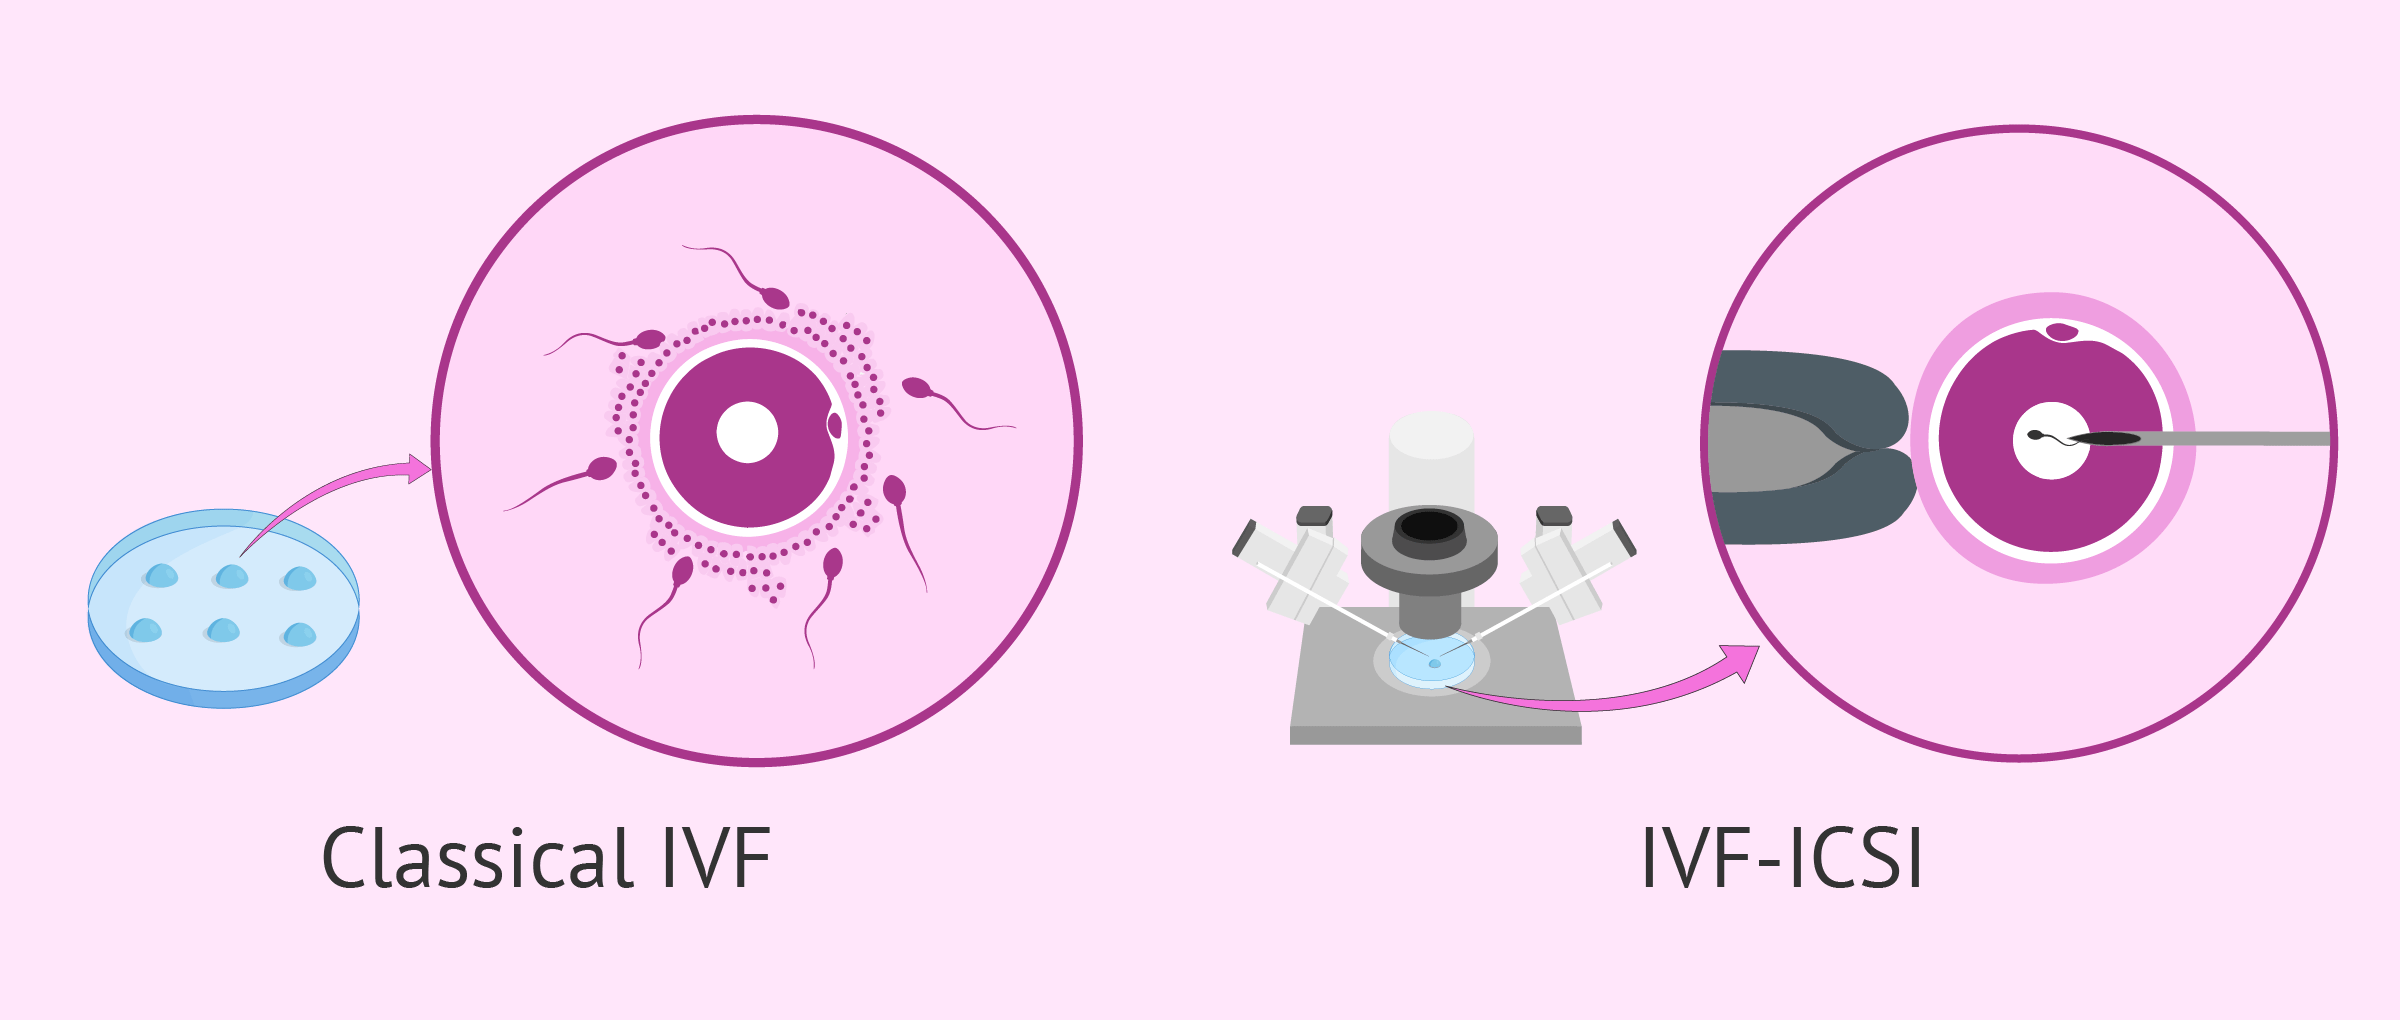 What Is the Difference between Conventional IVF & ICSI?